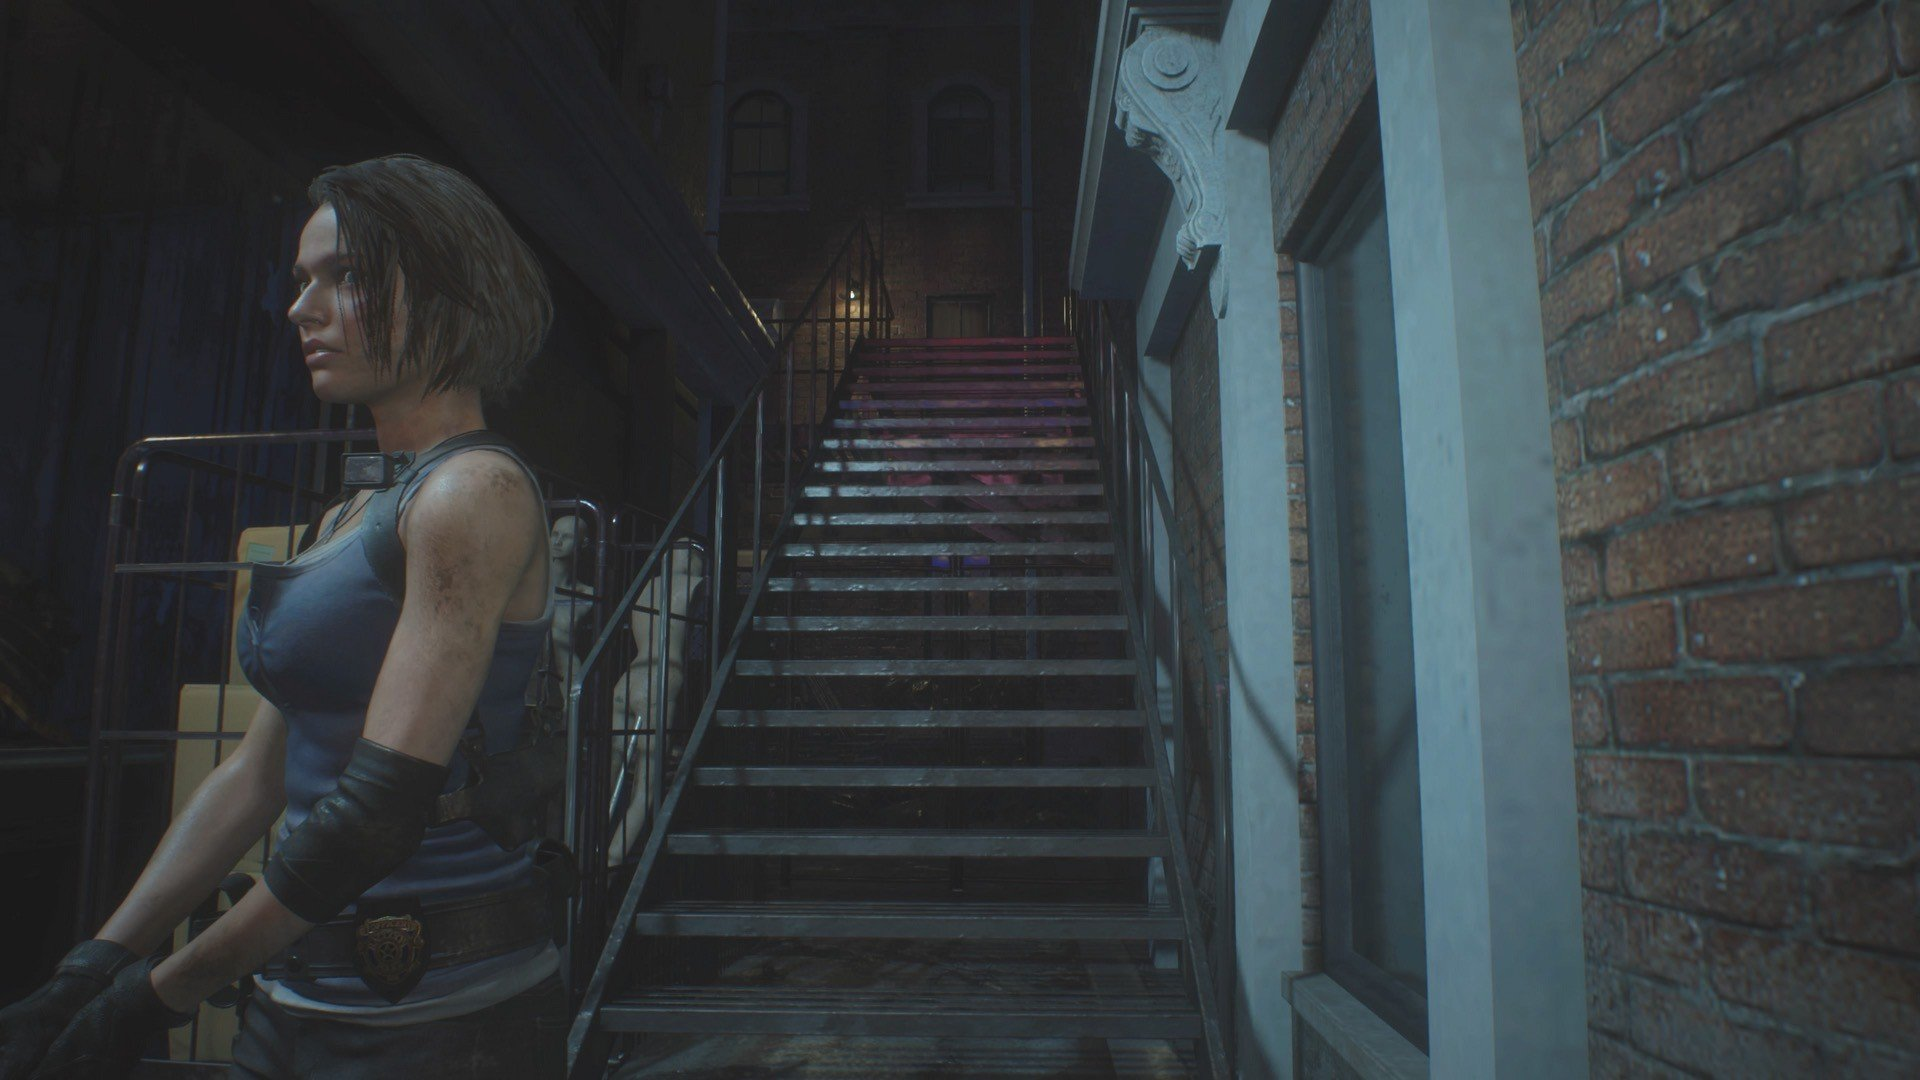 New Details Of 'Resident Evil 8' Leak